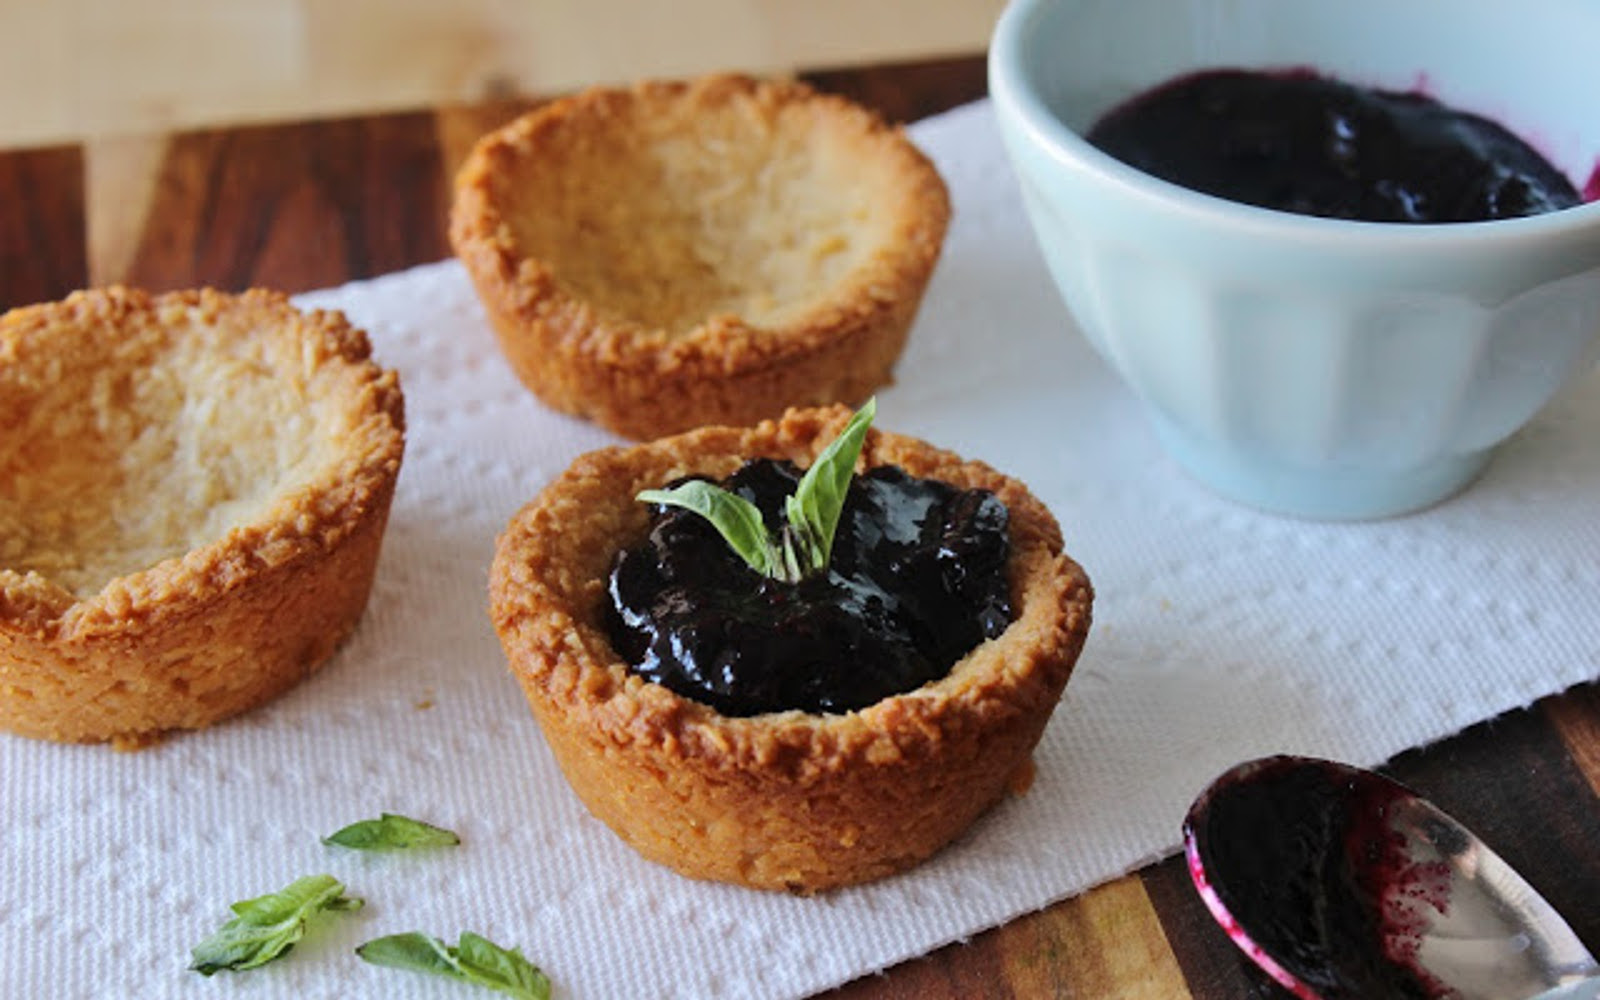 Lemony Macaroon Cups with Blueberry Basil Compote